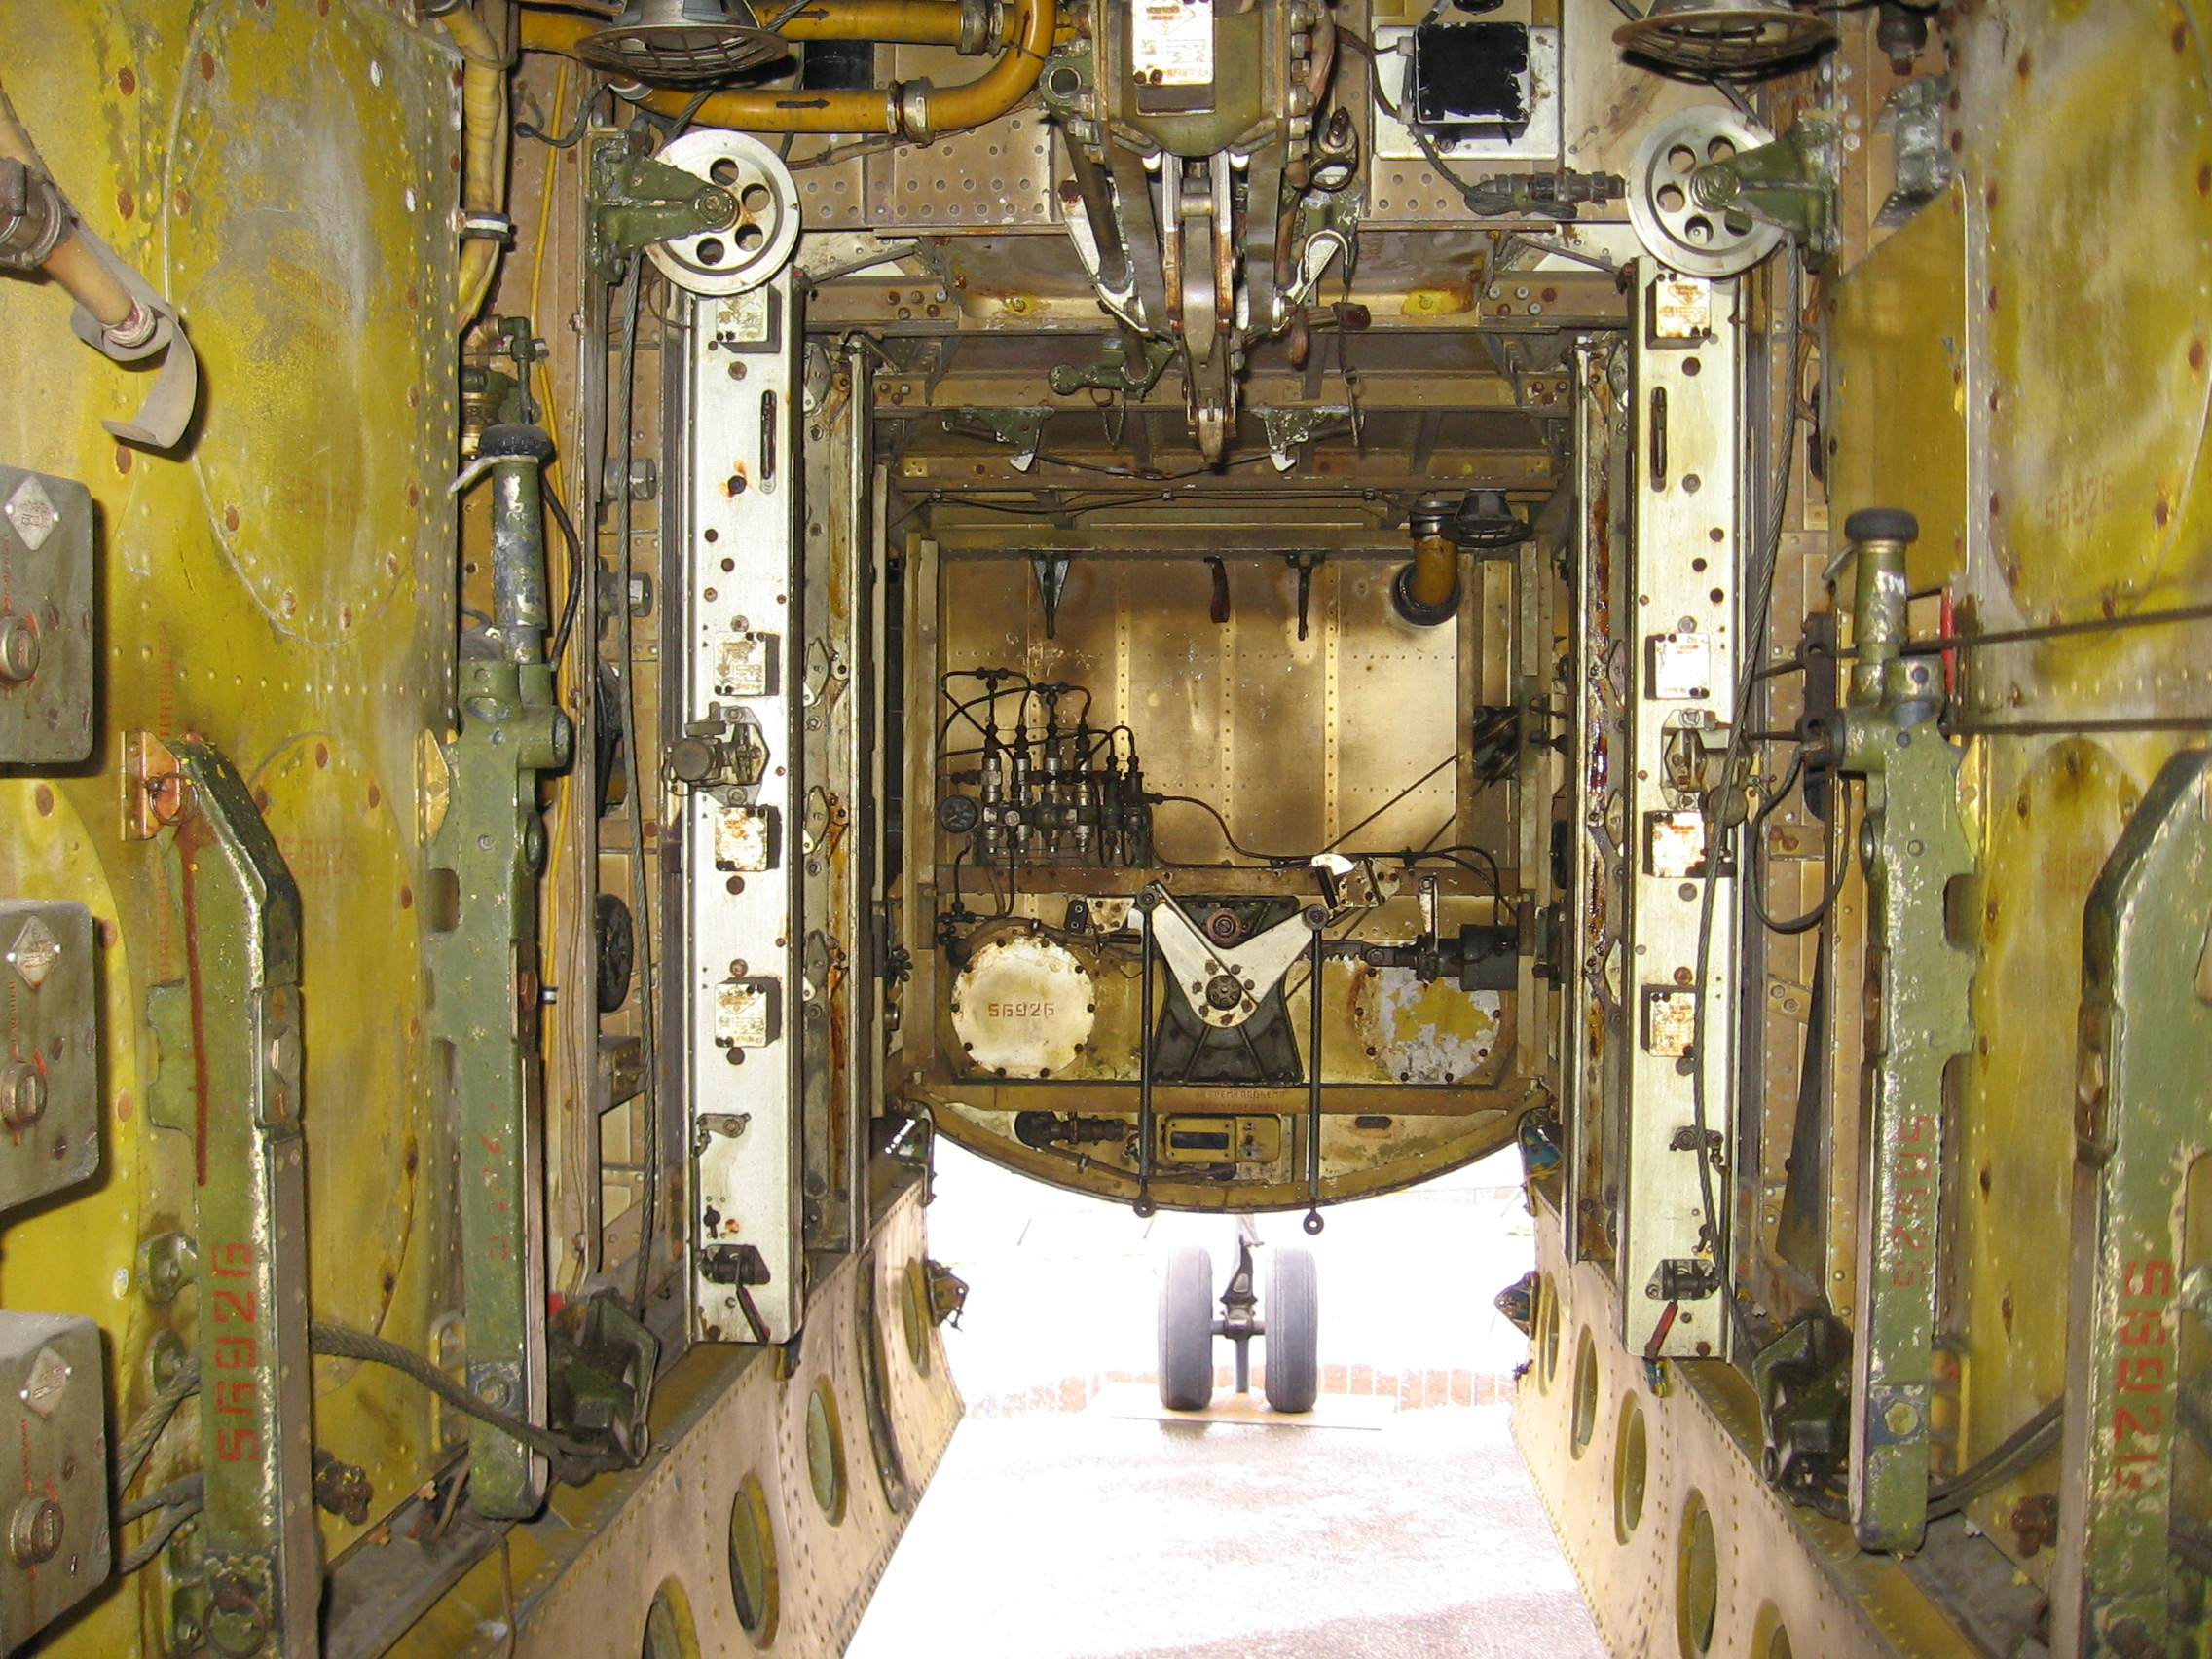 Bomb bay (bomb rack) Il-28